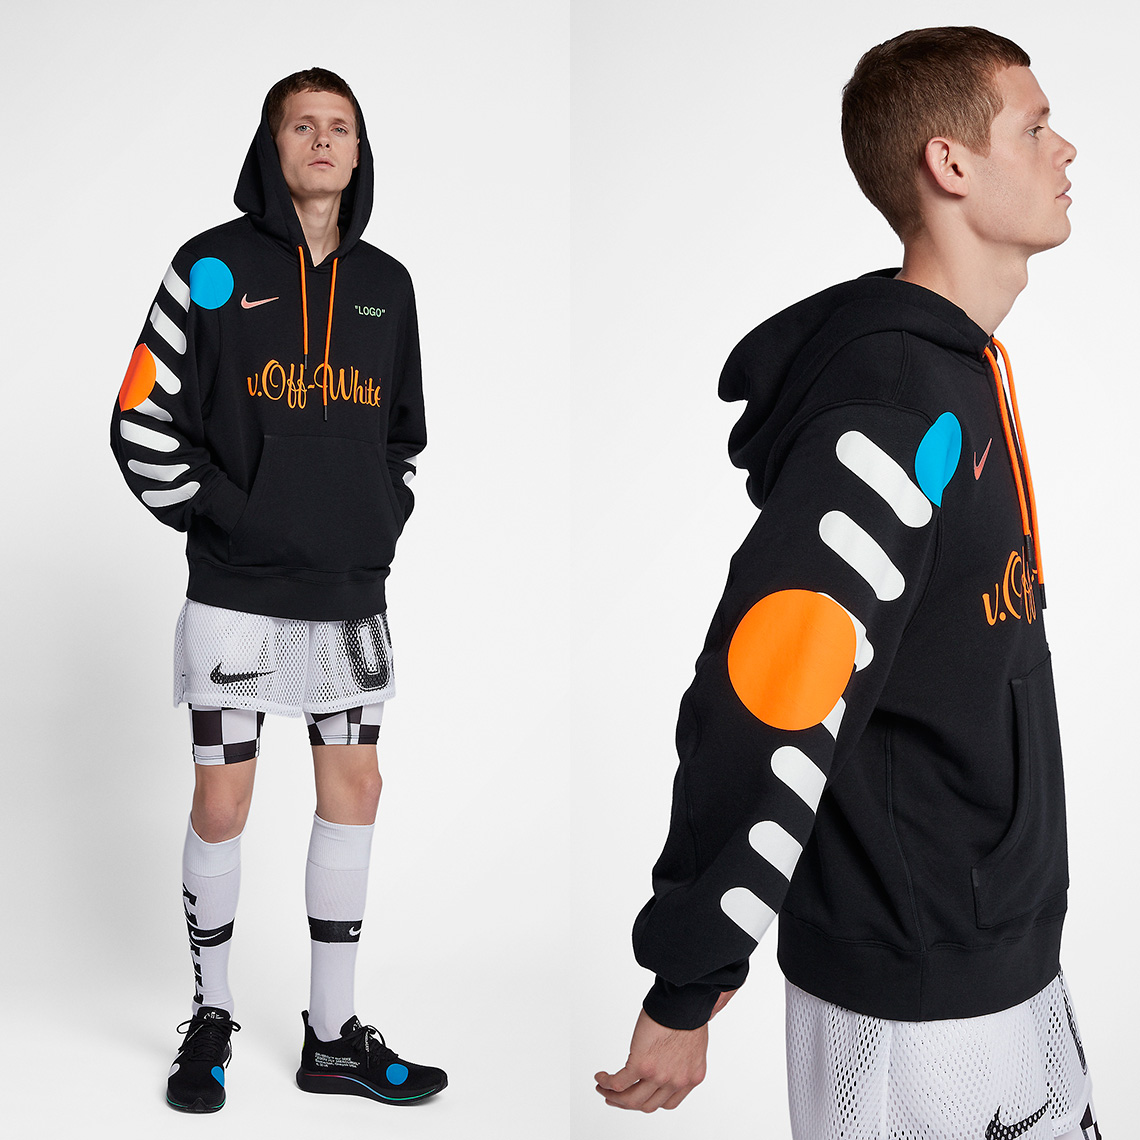 2b4b3bdd Reminder: The OFF-WHITE™ x Nike 'Football, Mon Amour' Collection Drops  Tomorrow